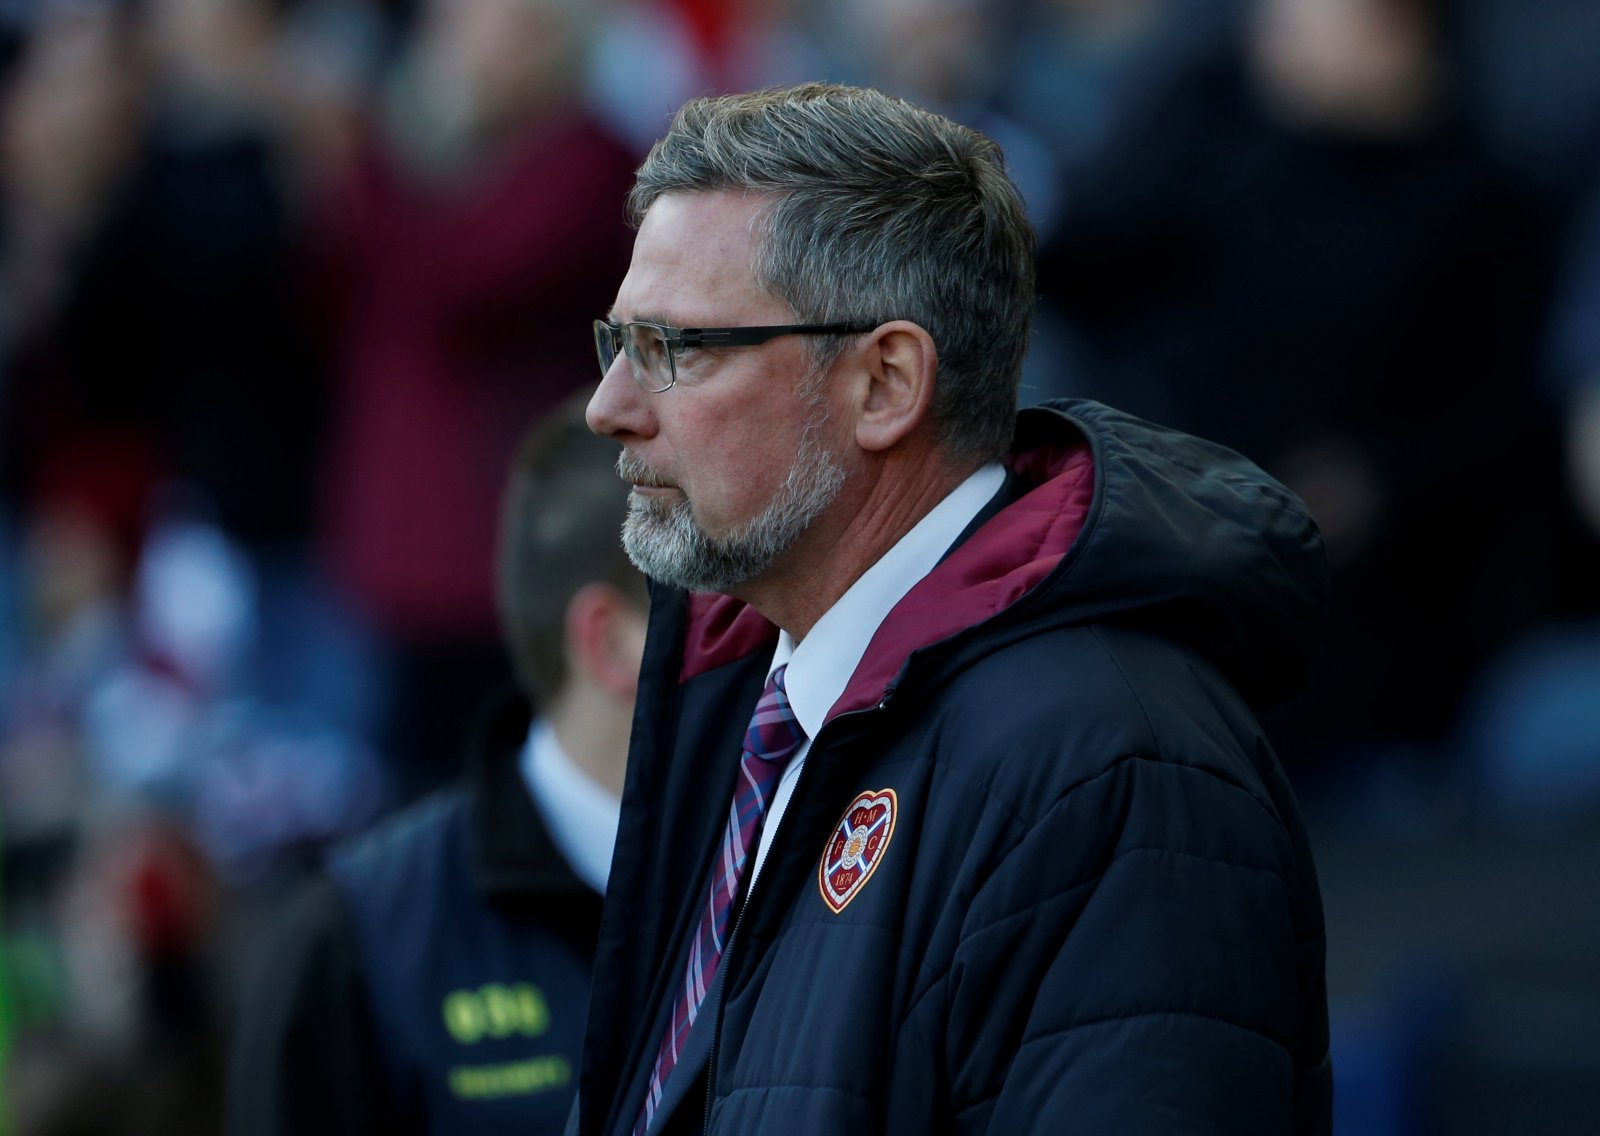 Celtic: Fans lambaste Hearts manager Craig Levein for post-match comments